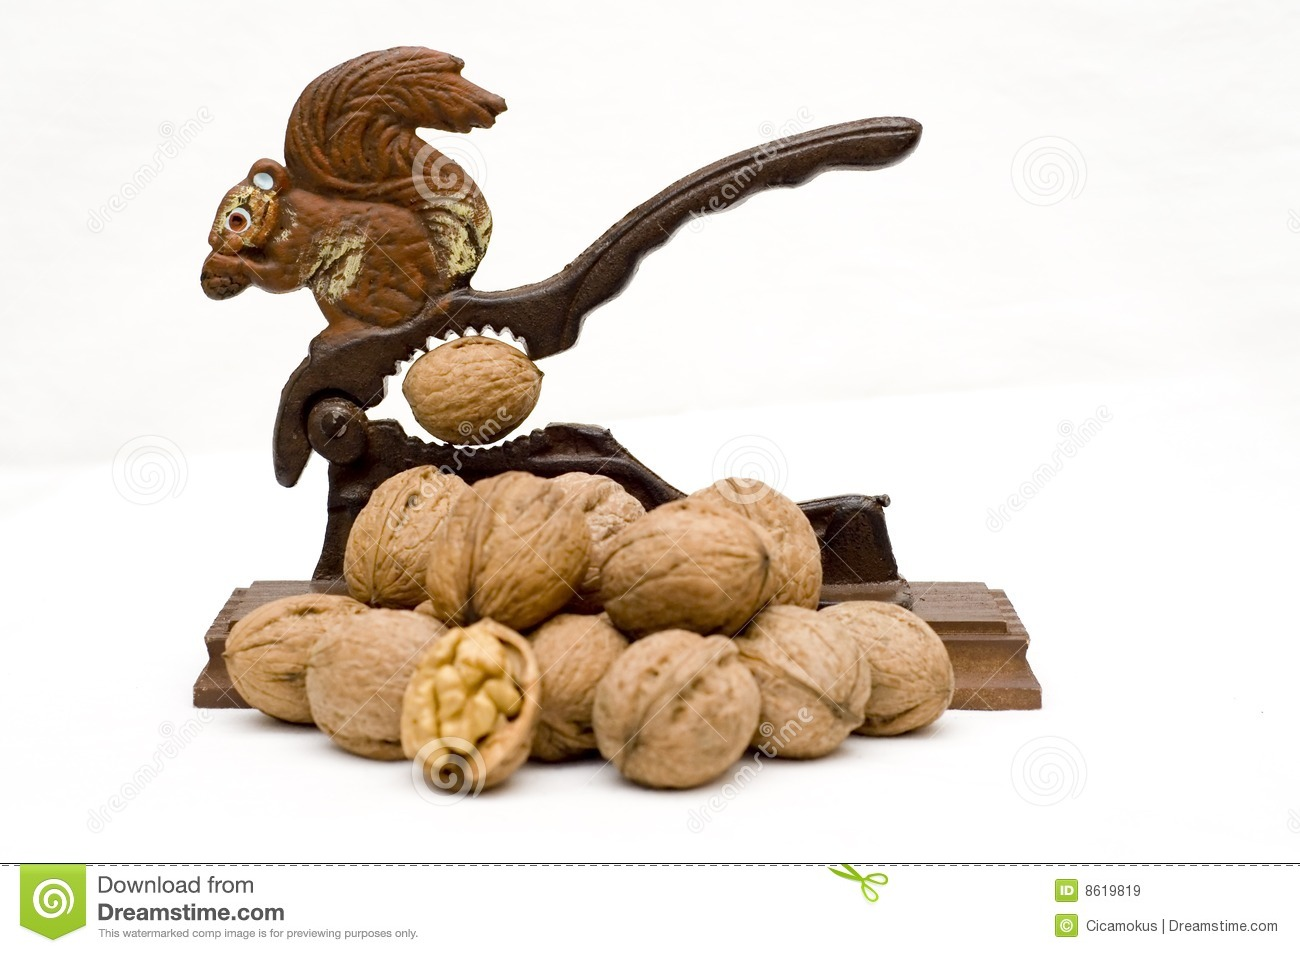 Squirrel nutcracker and walnuts stock image image 8619819 Nutcracker squirrel